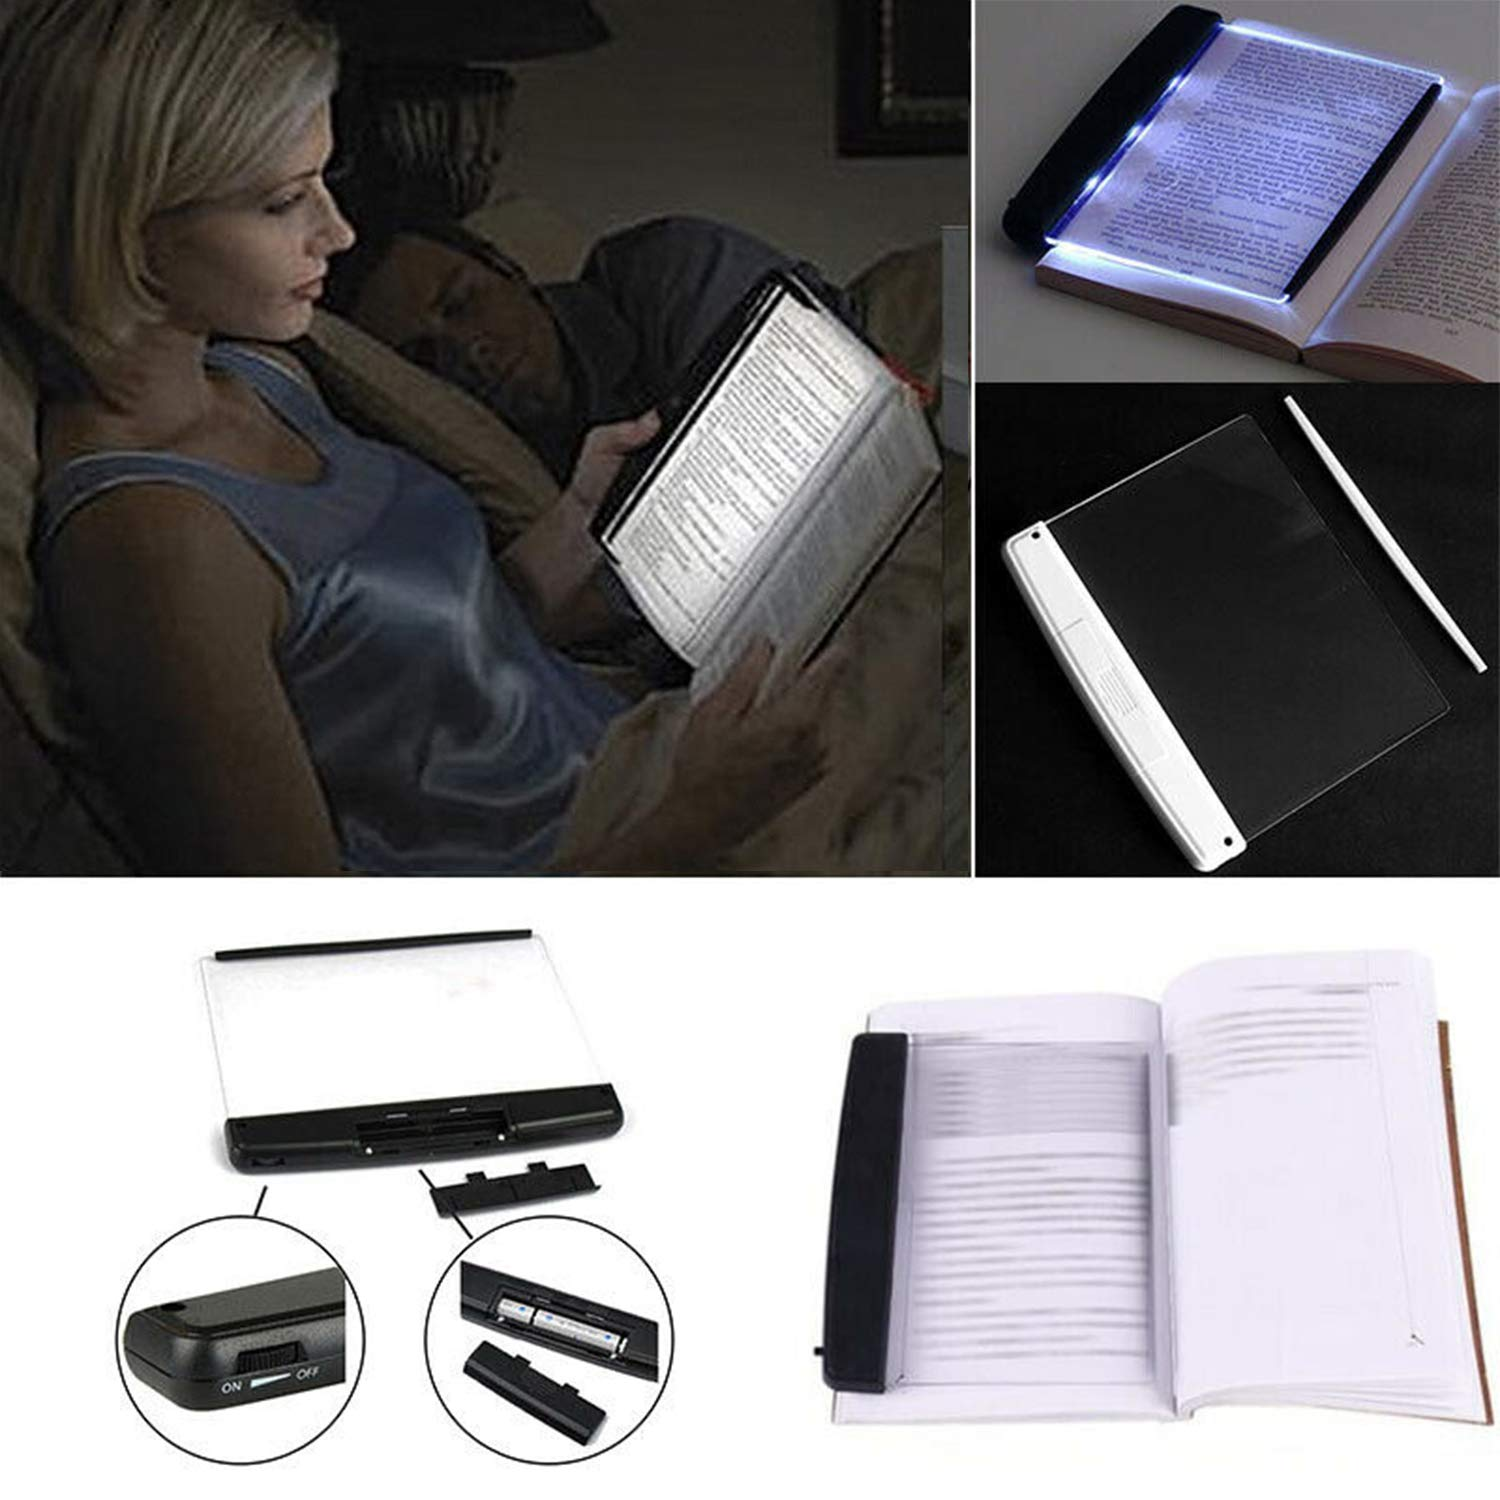 Ventens 2019 Portable LED Read Panel Light Book Reading Lamp Night Vision